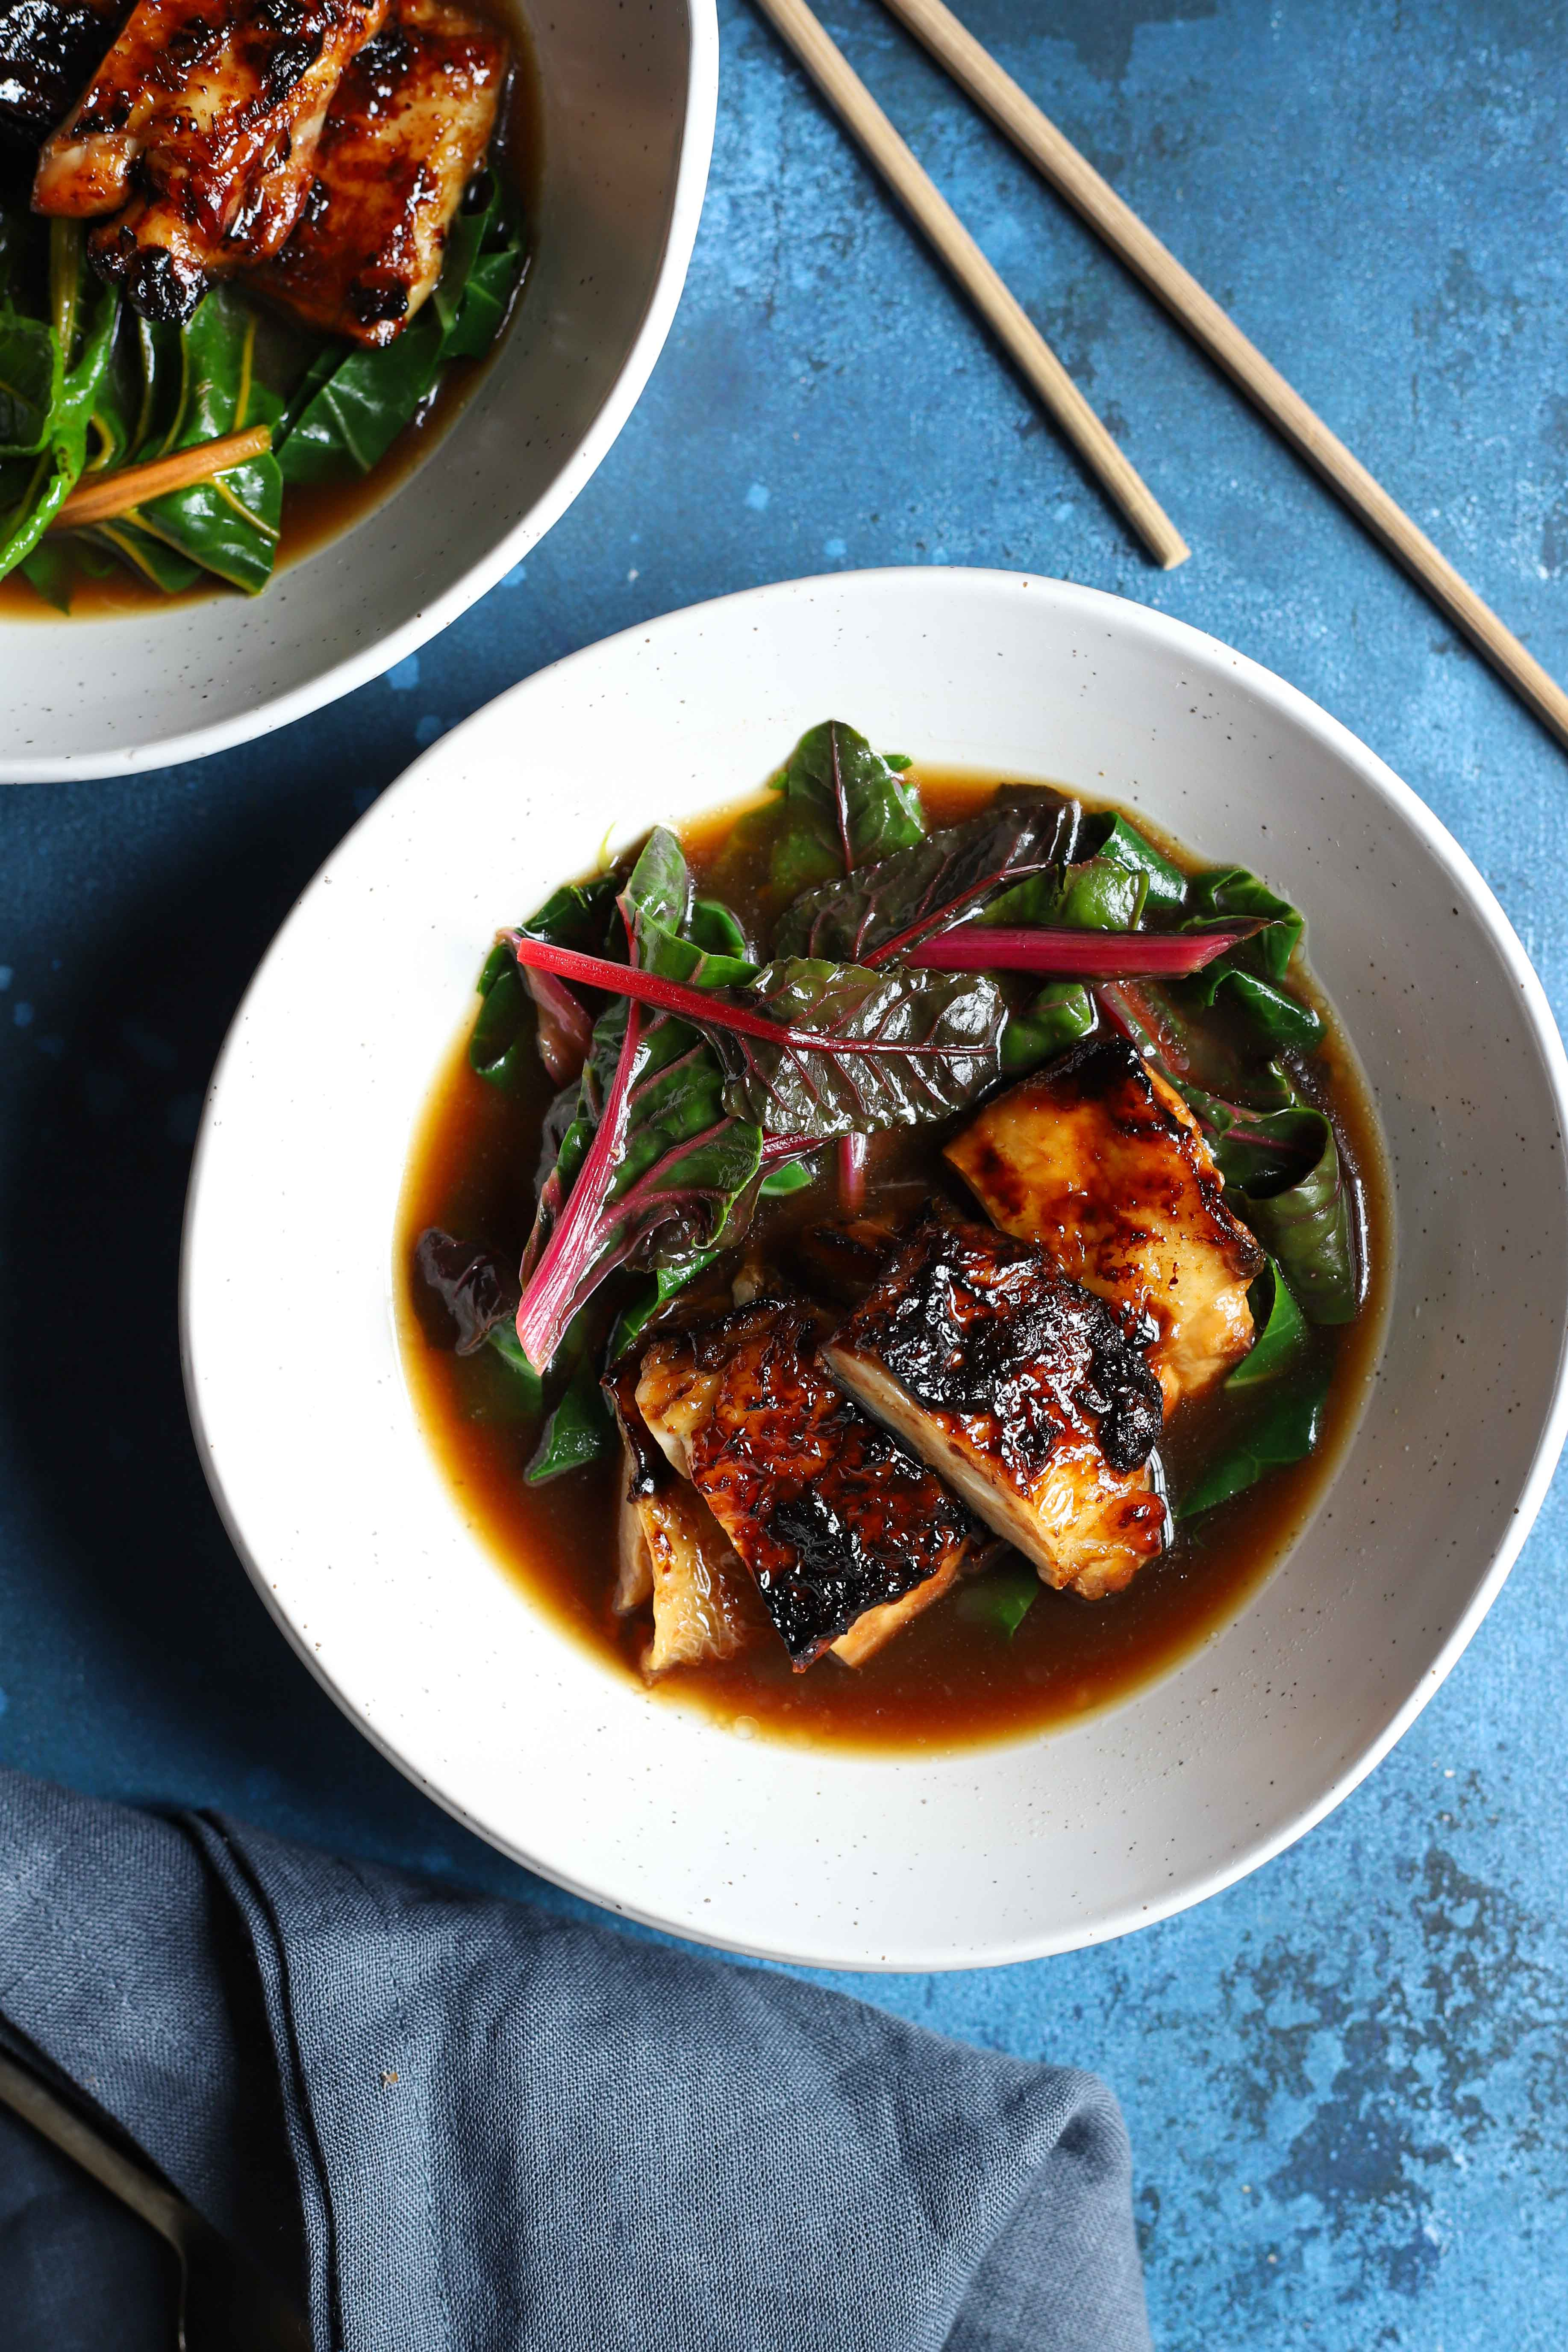 Chicken pho - The perfect chicken soup